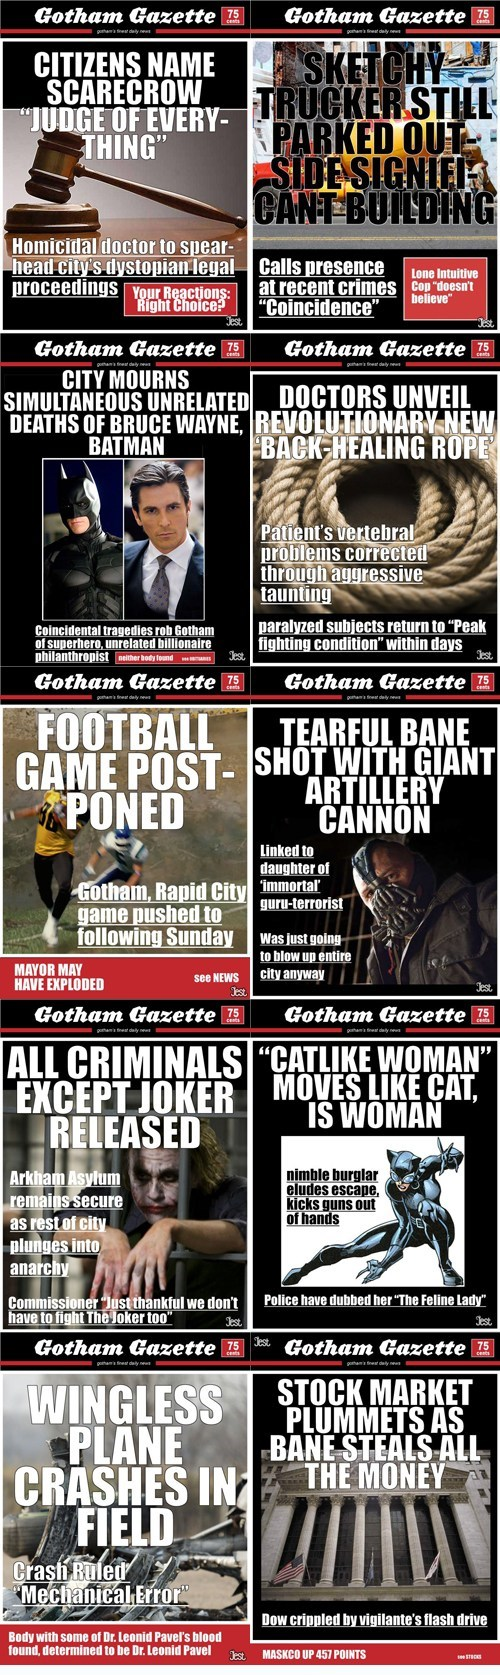 Set Phasers to LOL: Gotham Newspaper Headlines